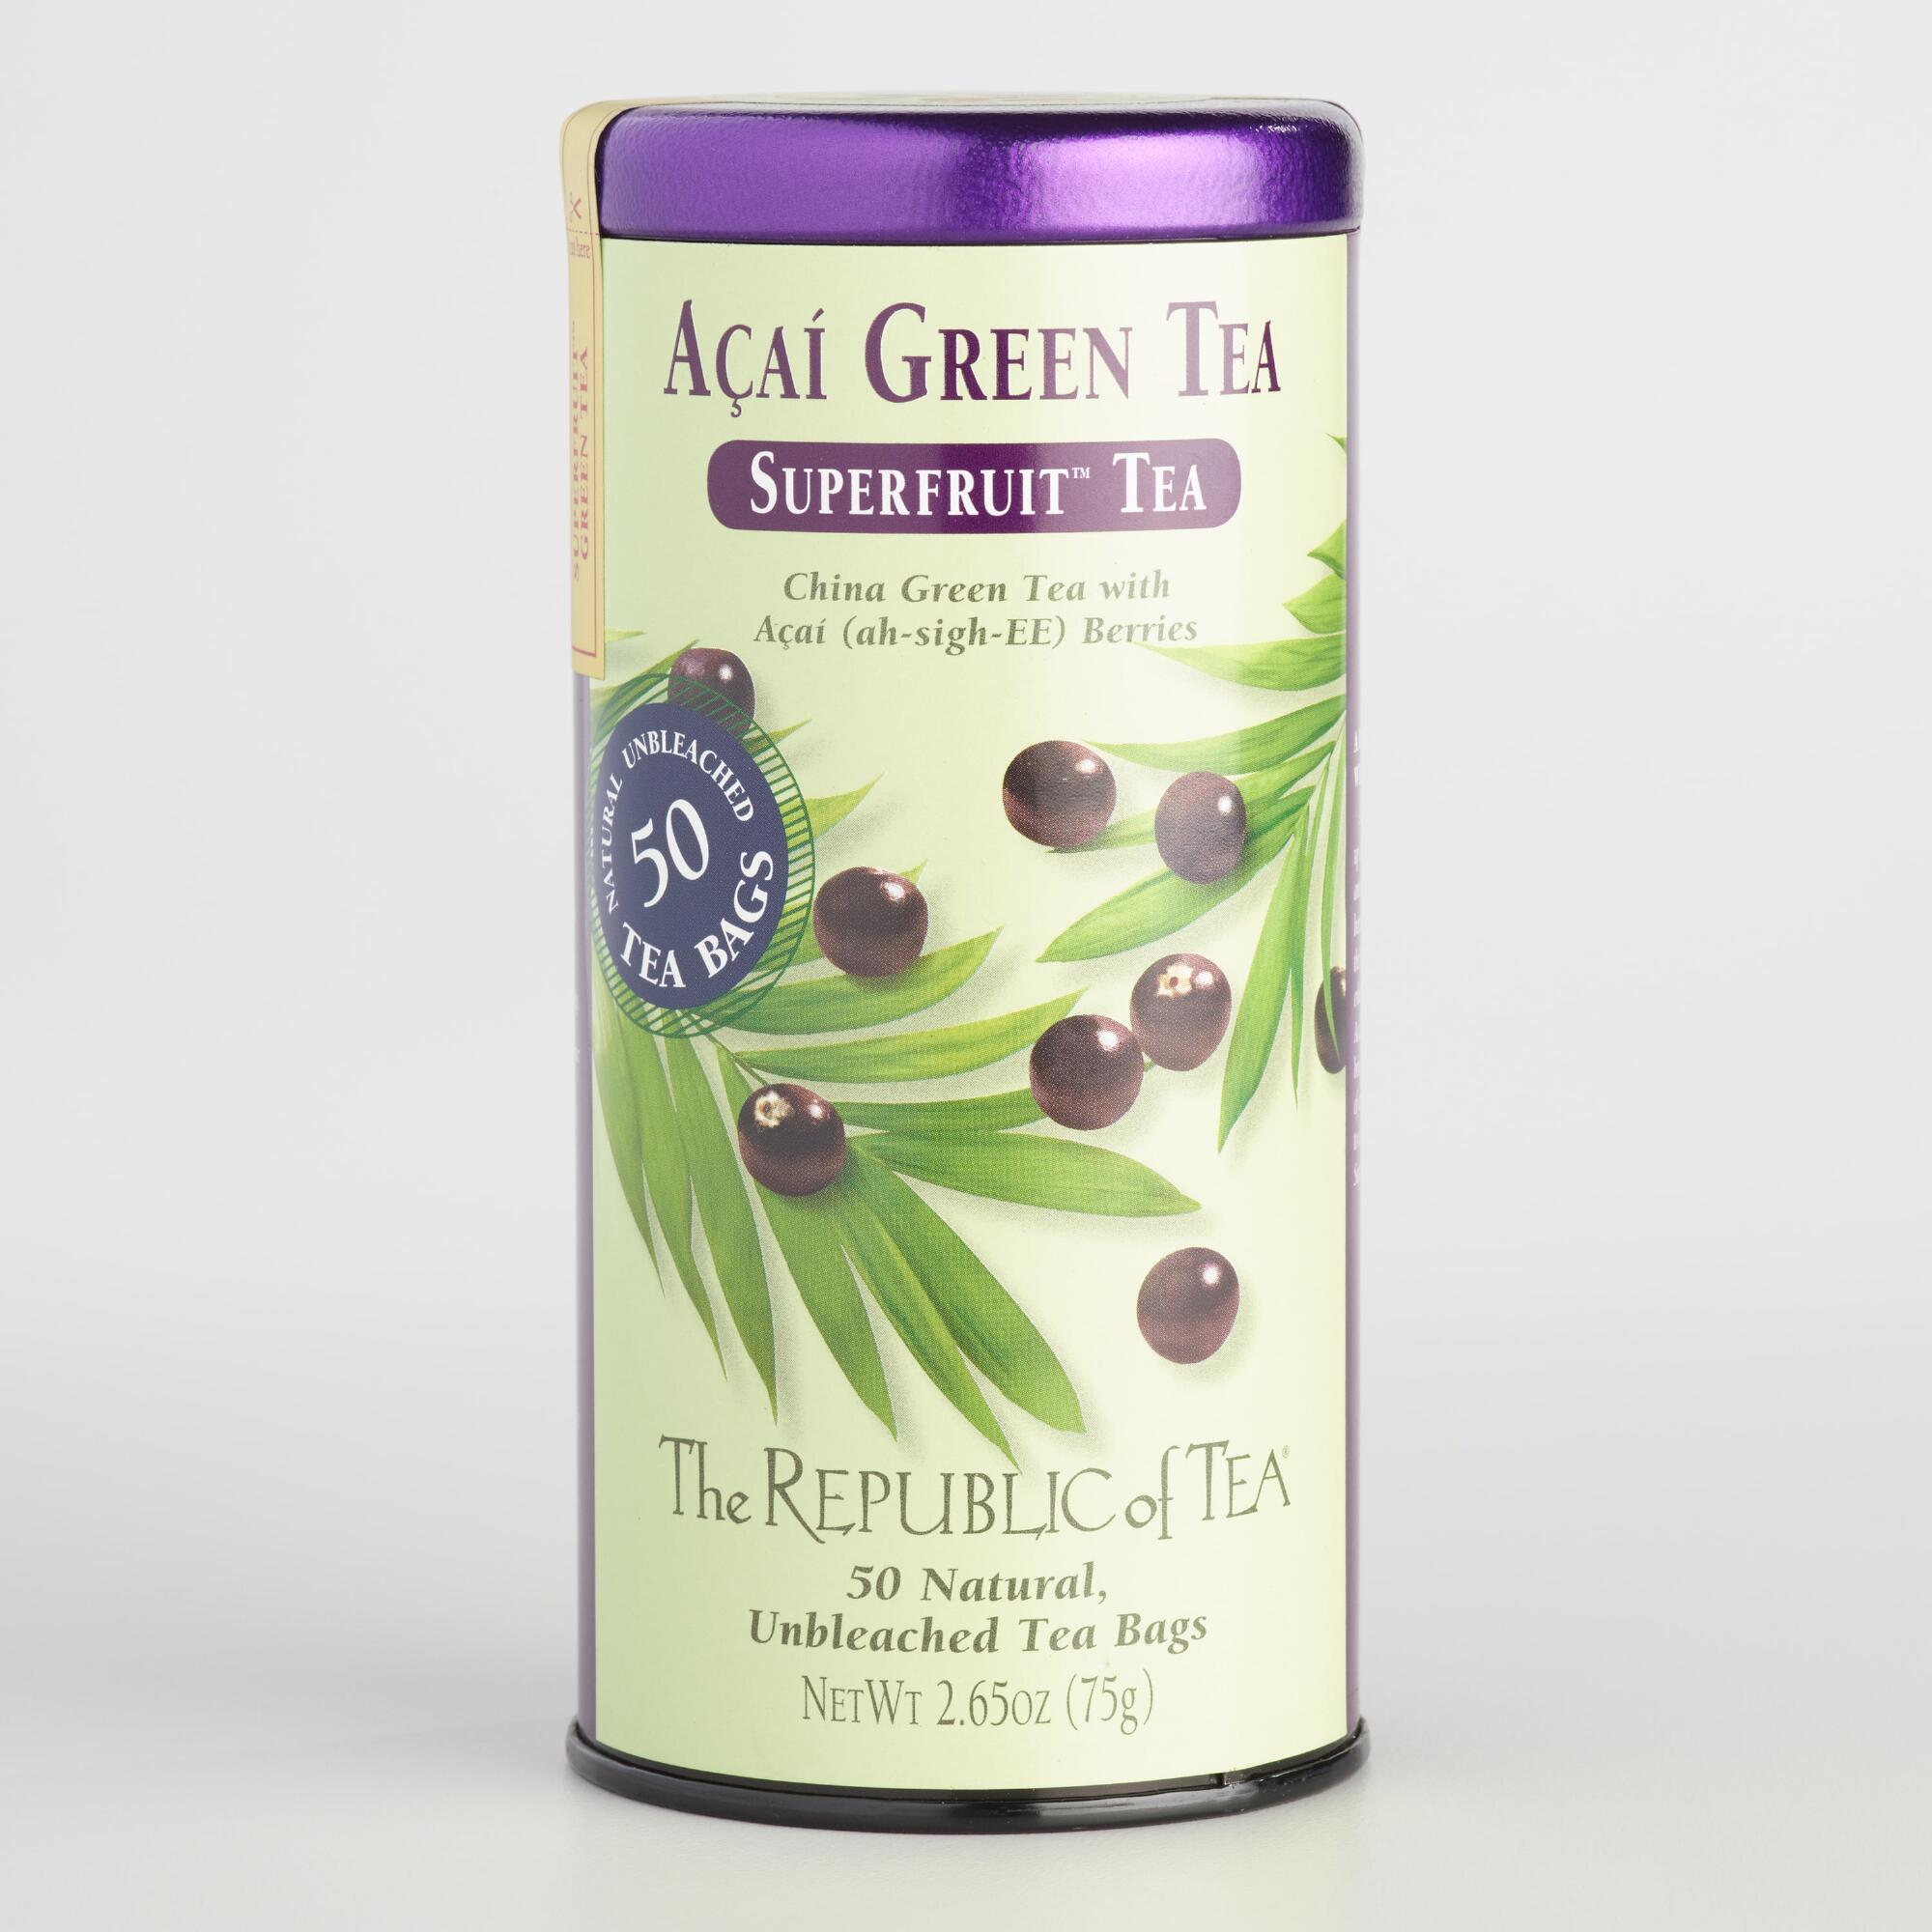 Acai green tea benefits